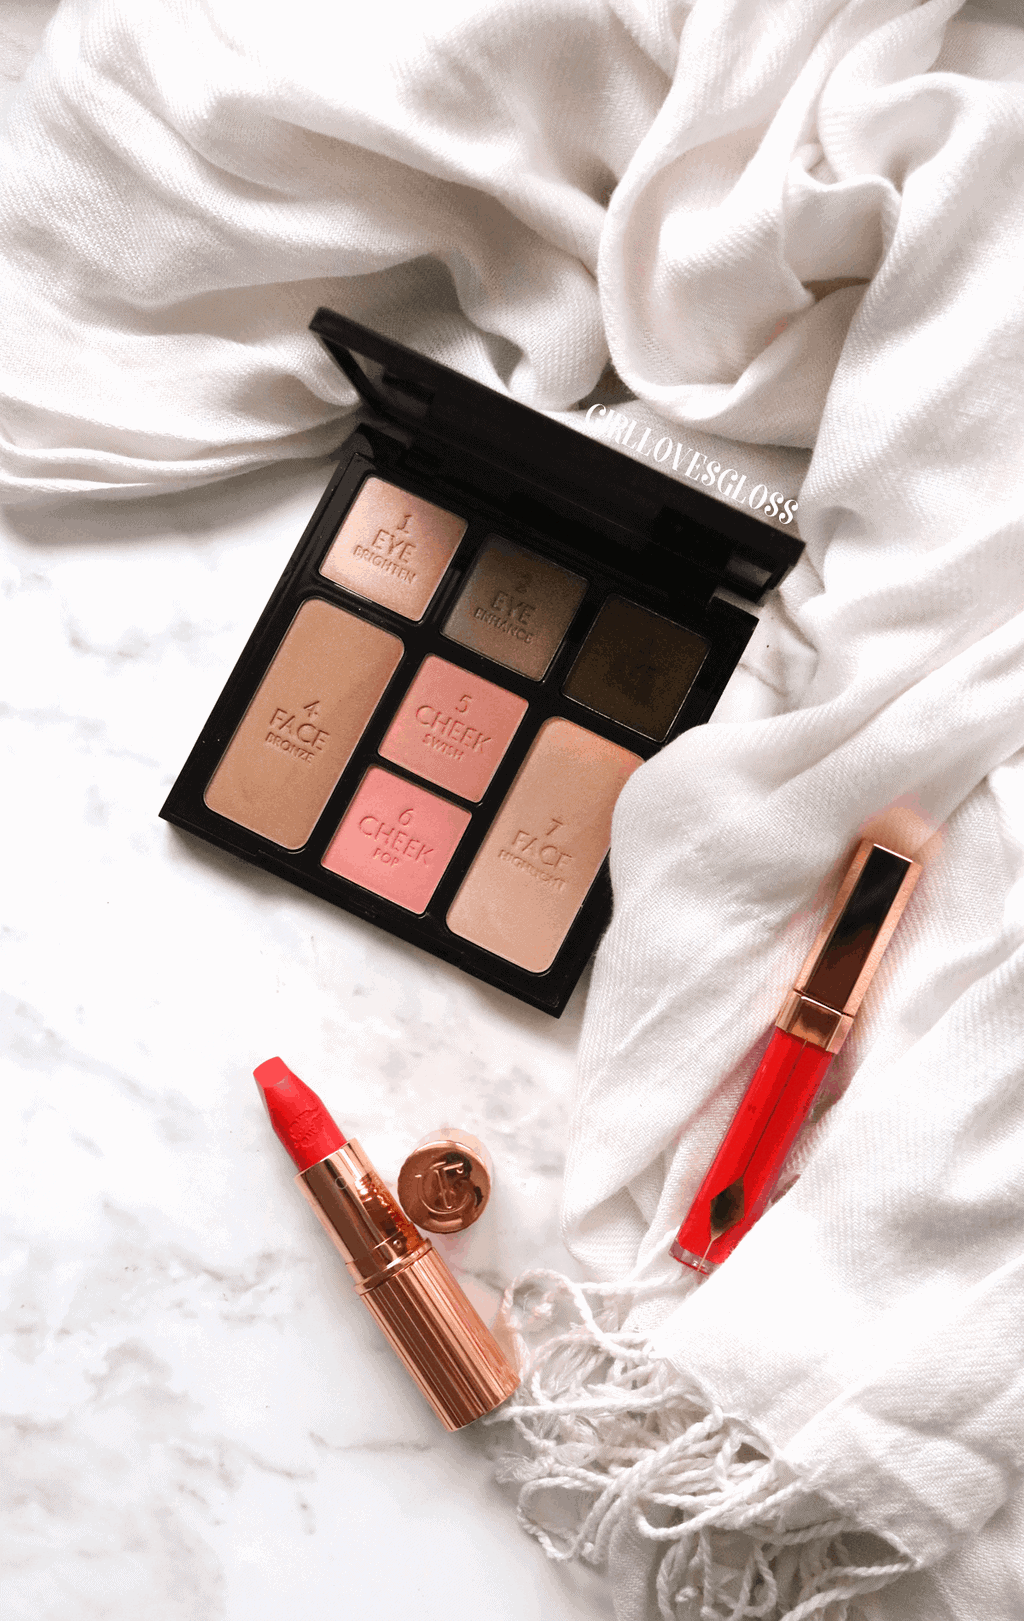 Charlotte Tilbury's New Palette Has Your Whole Face Sorted + Giveaway